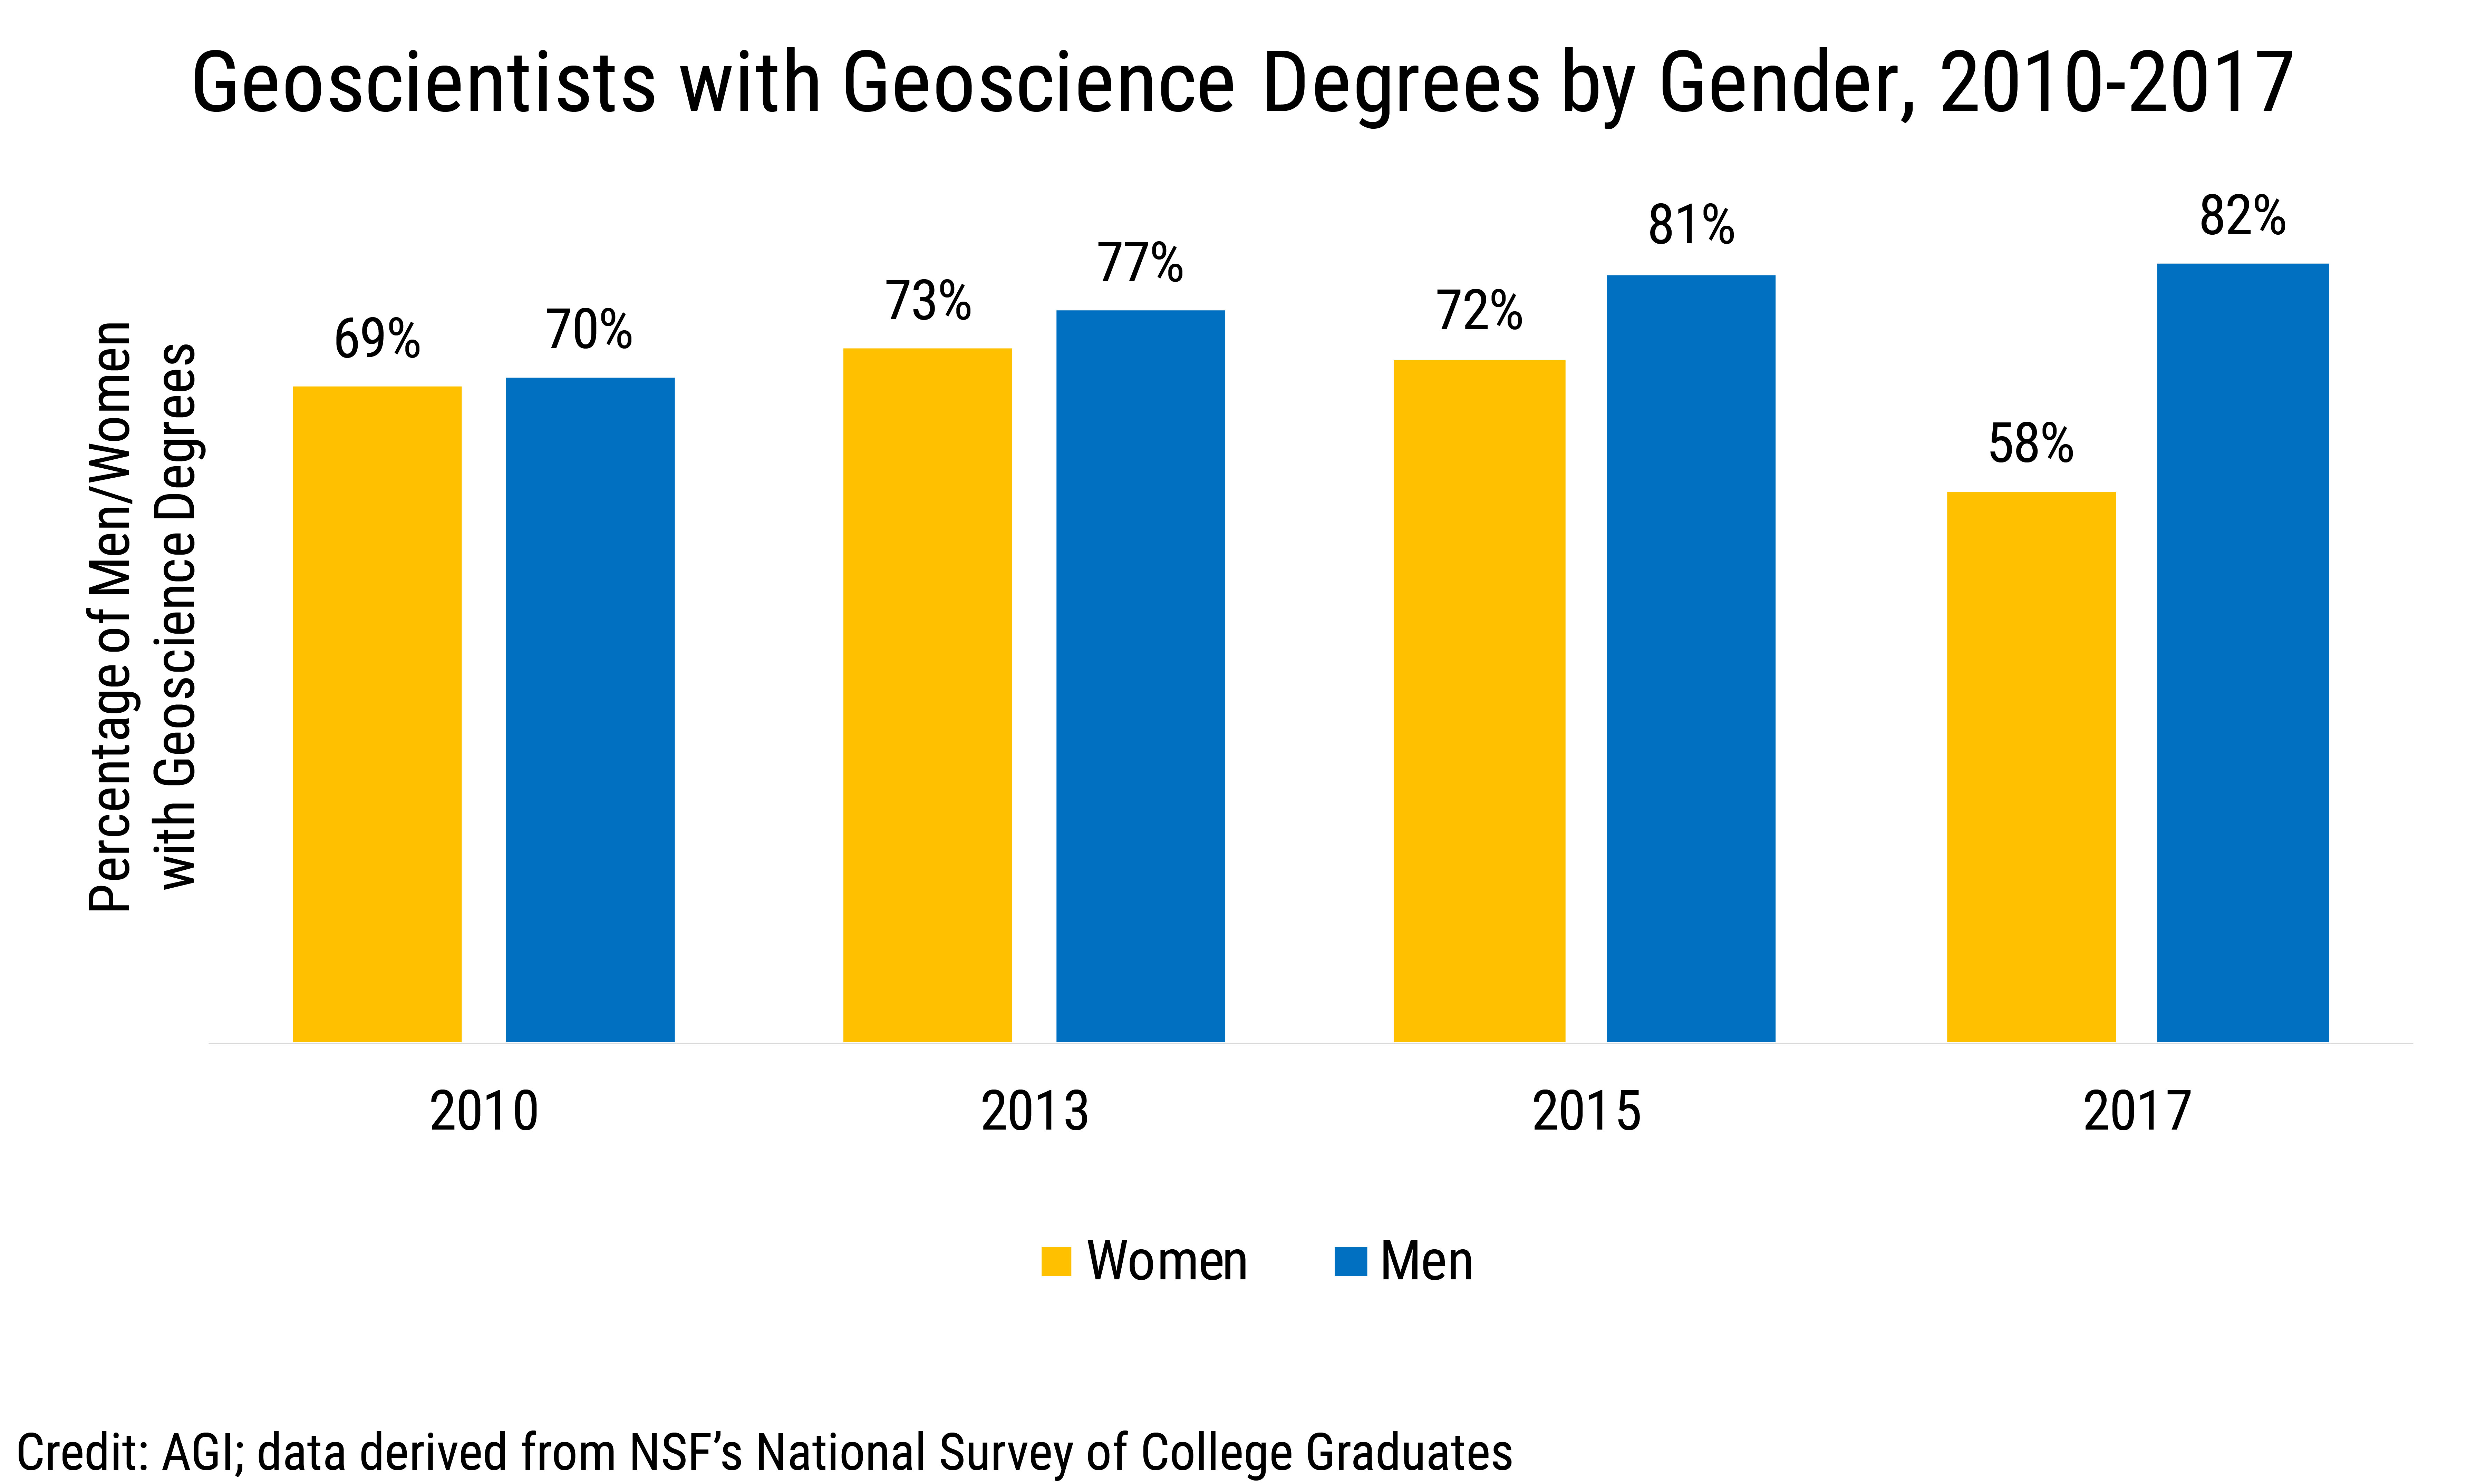 Data Brief 2019-015 chart 02: Geoscientists with Geoscience Degrees by Gender  (credit: AGI; data derived from NSF NSCG)